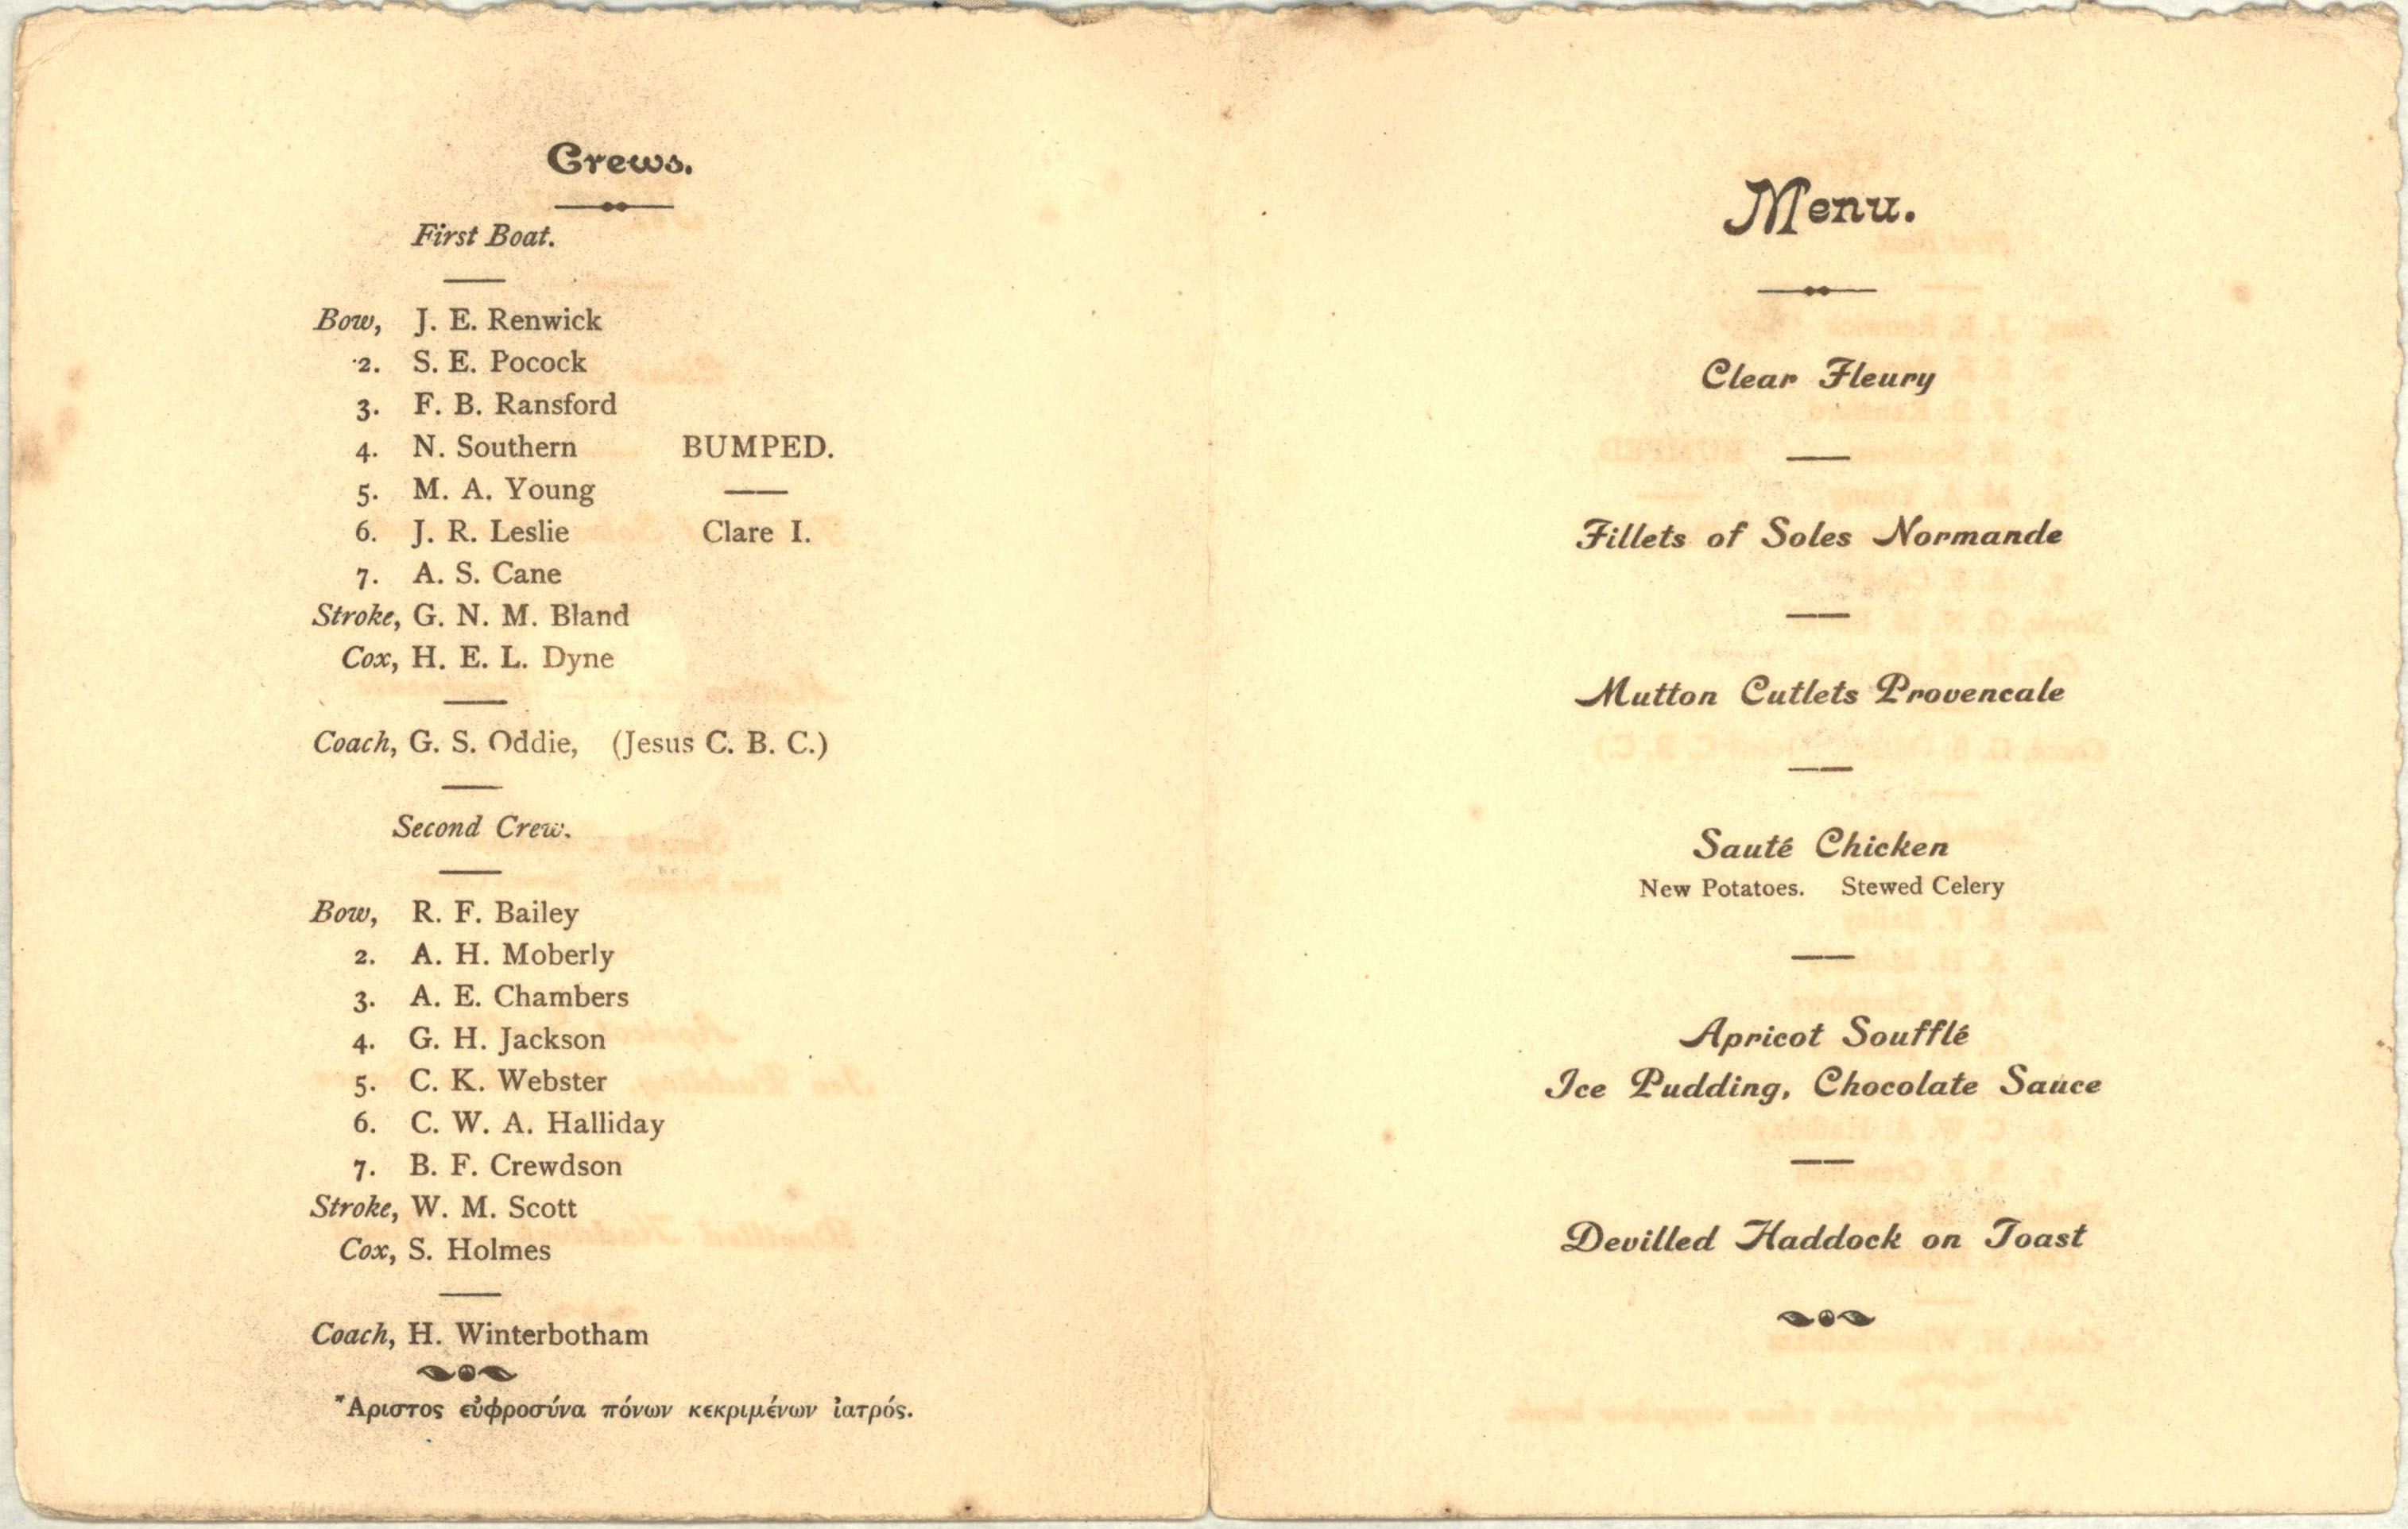 Lent Bumps Dinner programme from 1906, including crew lists and menu. [KCAS/5/3, Lent 1906 verso]